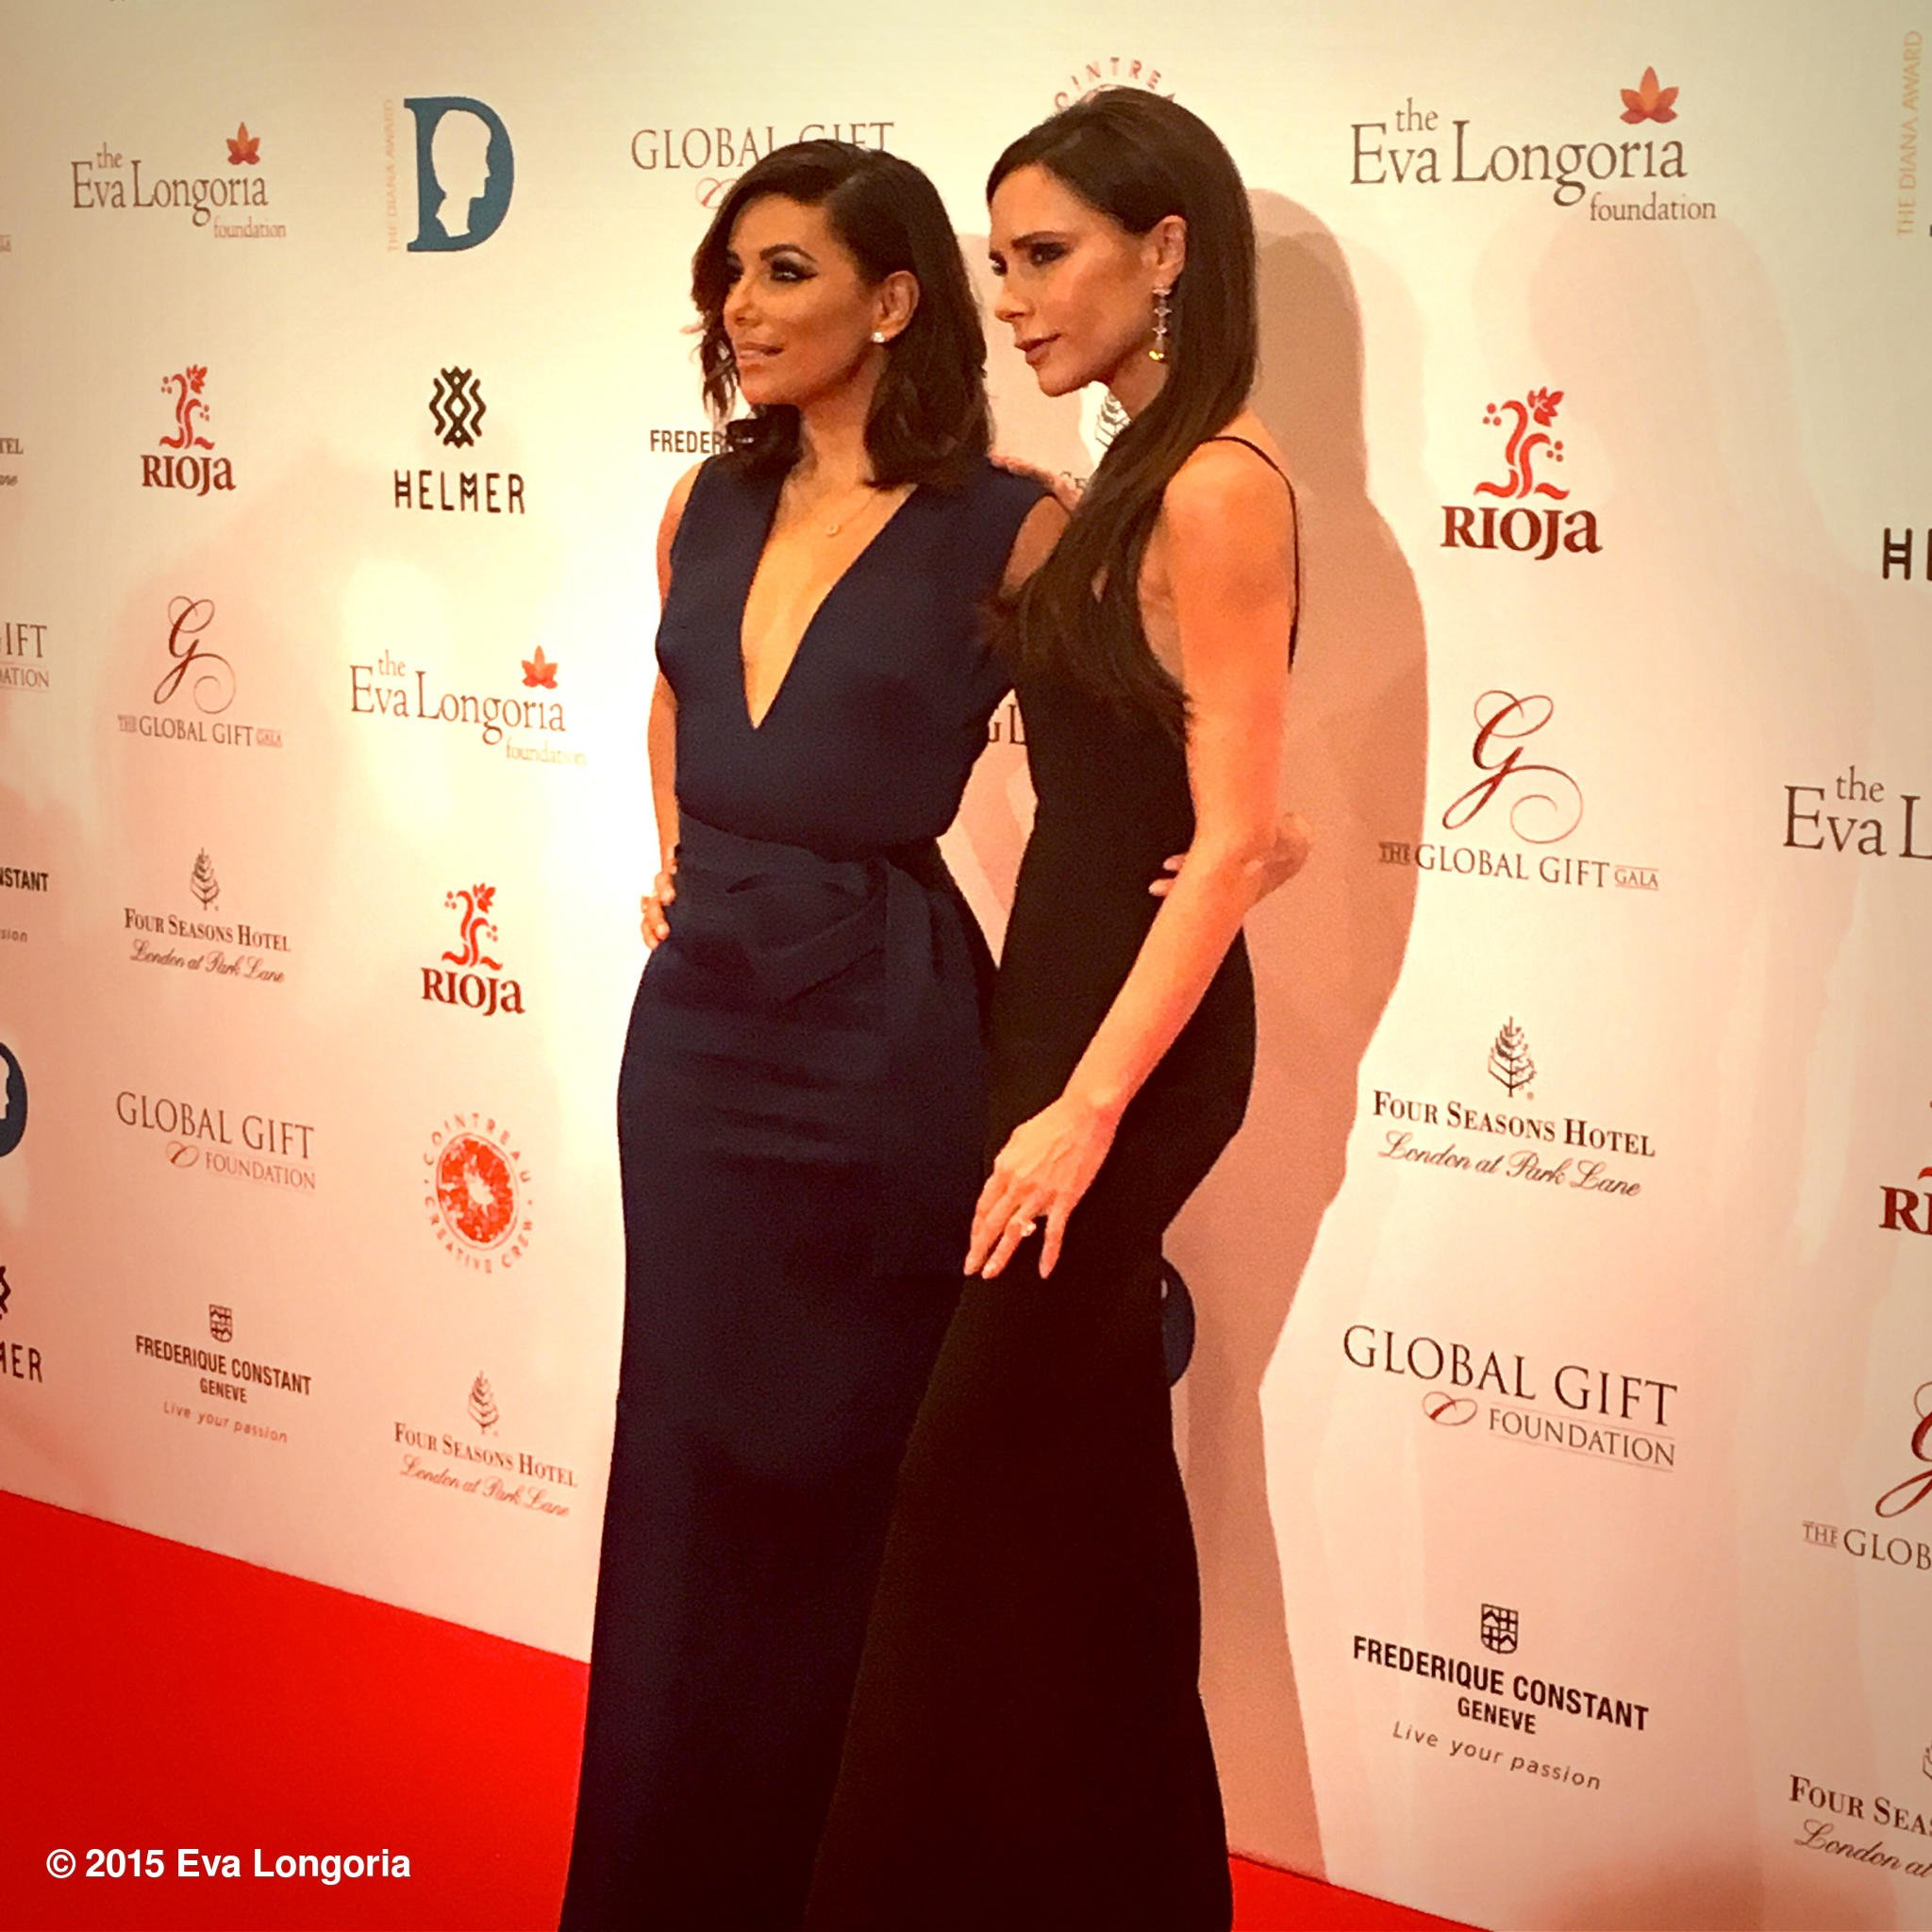 My dear friend @victoriabeckham and I on the red carpet for Global Gift Gala London! #GGFLDN15 https://t.co/cxdTjFacx4